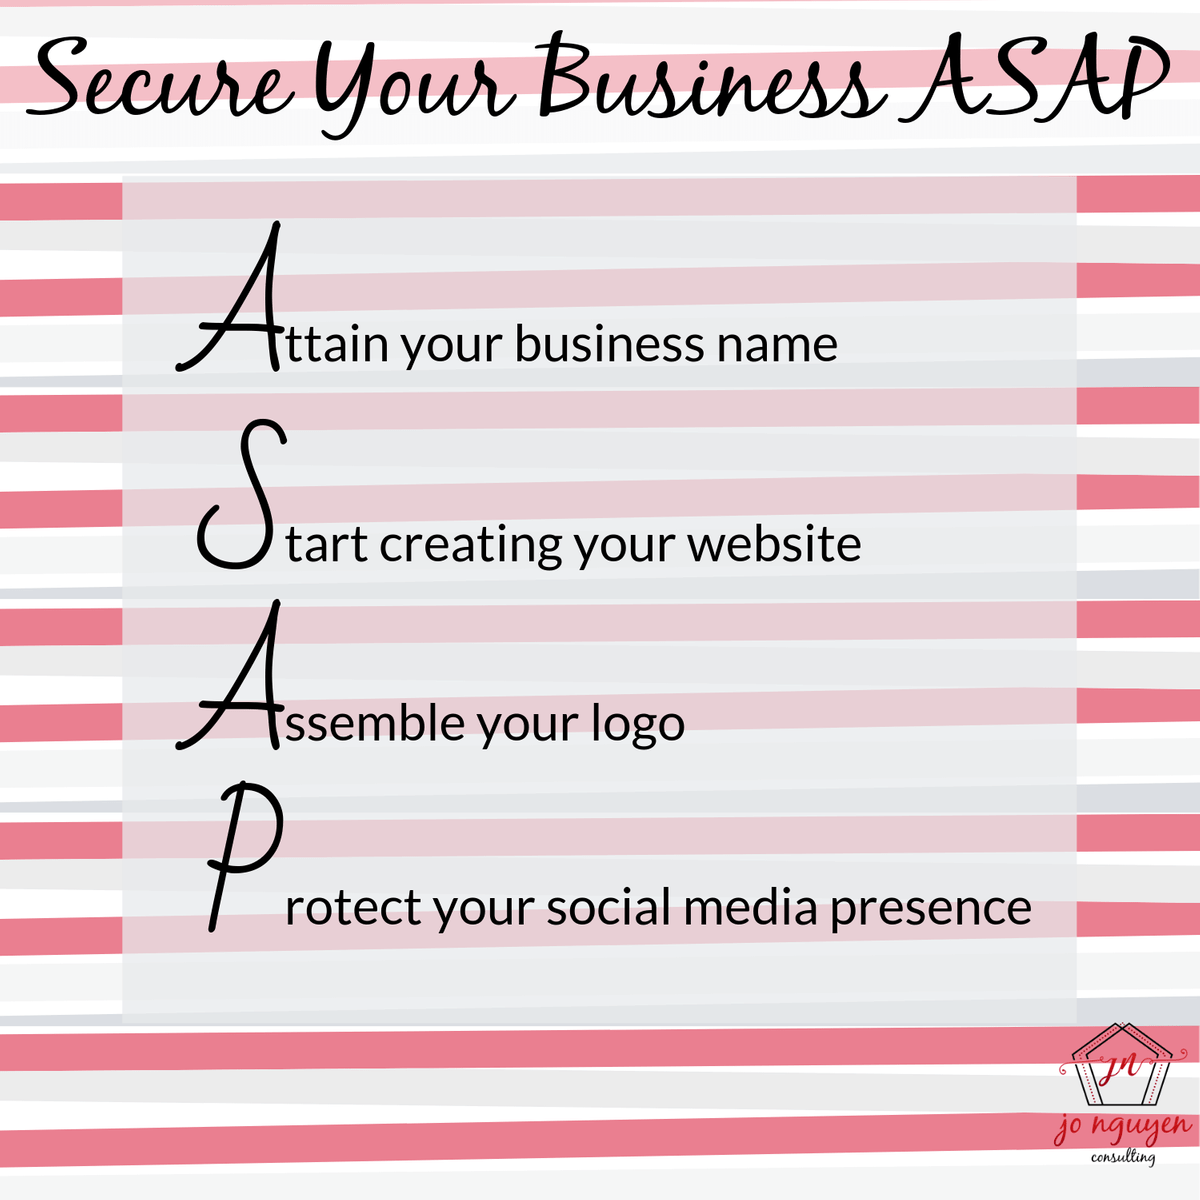 Jo Nguyen Consulting freebie on how to secure your business ASAP